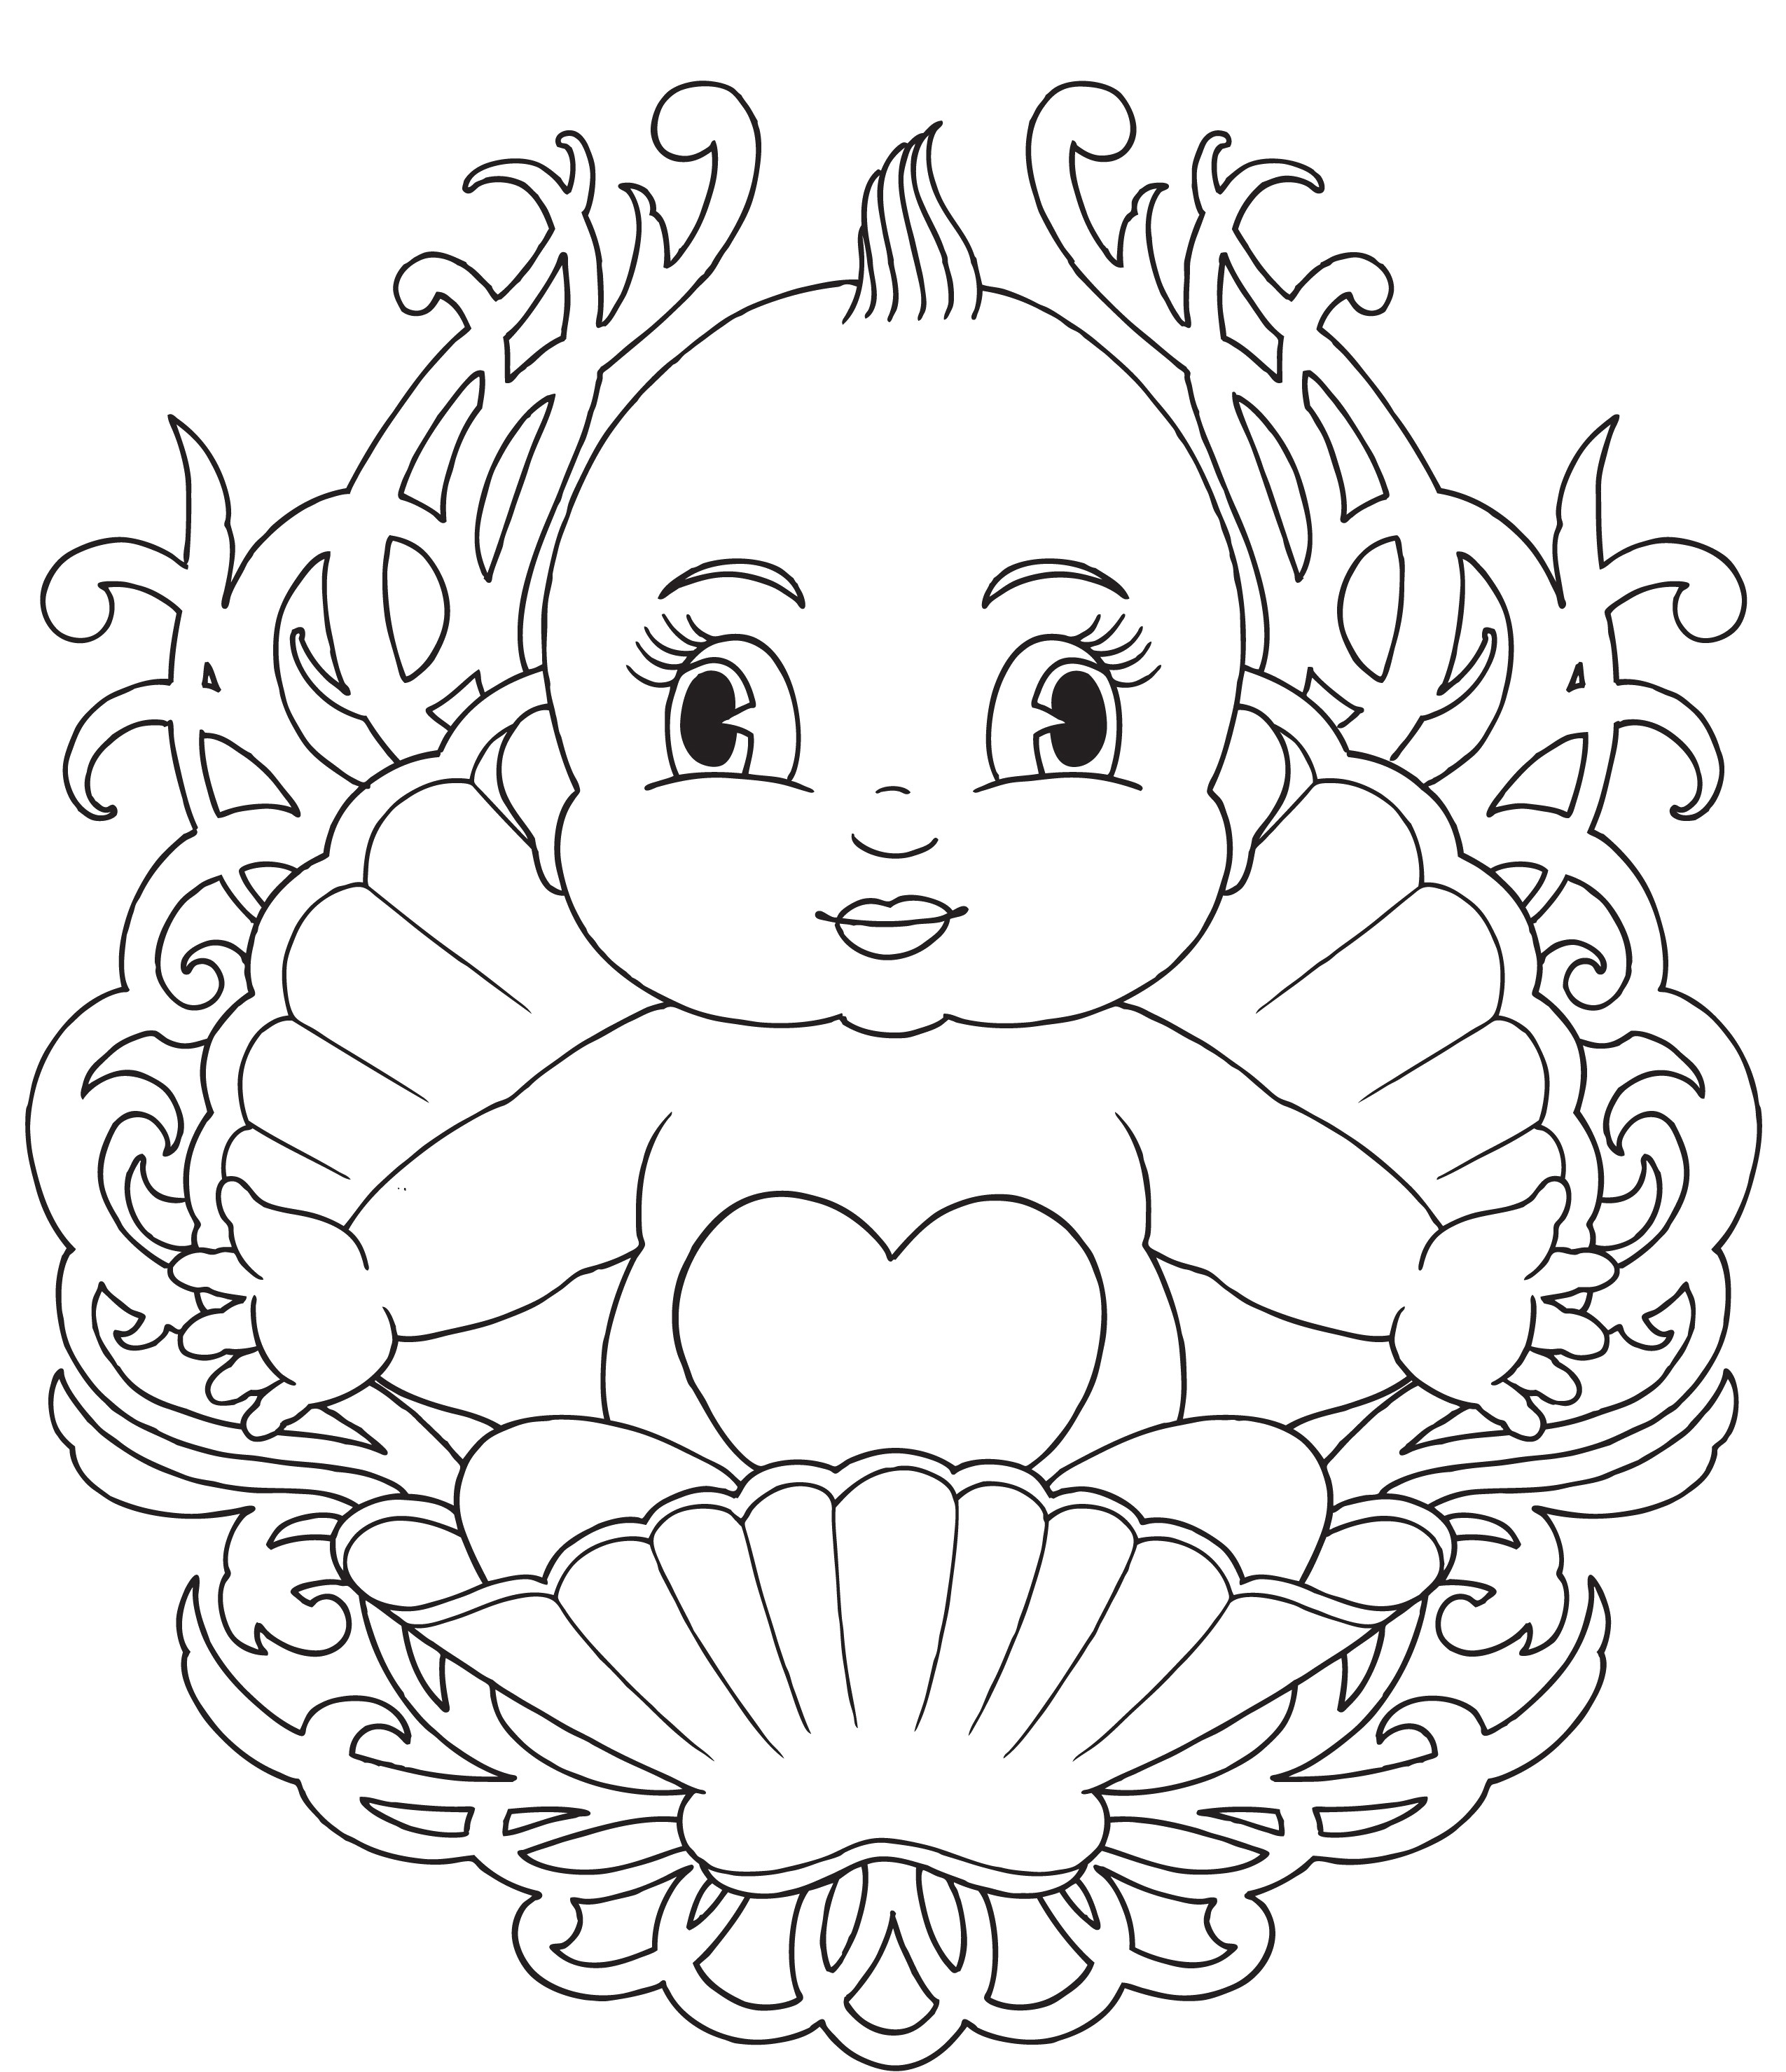 2550x2958 Sid And Baby Coloring Pages For Kids Inspirational More Images